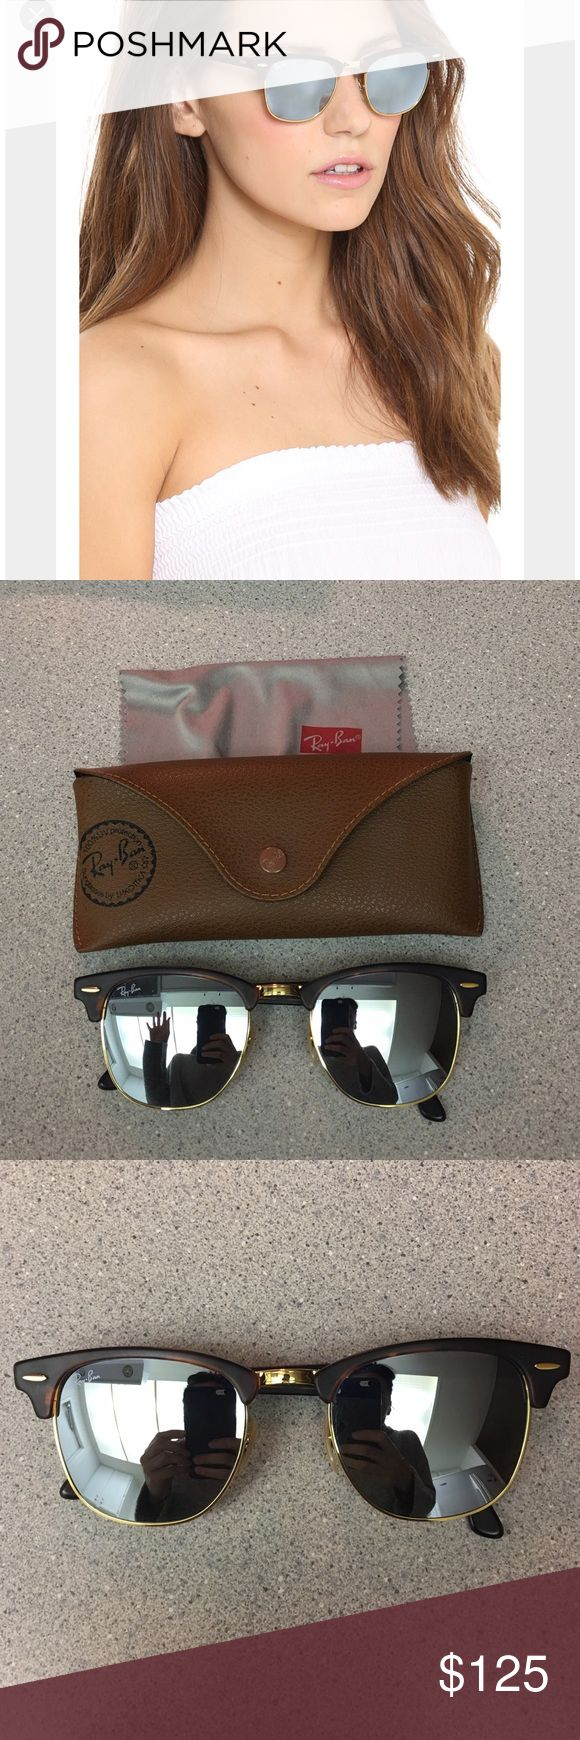 Ray-ban Clubmaster Silver Mirrored Sunglasses Classic Clubmaster shape by Ray-ban with a traditional mirrored lenses. Not tinted, silver mirror, so it looks a little more timeless than trendy. Purchased at Nordstrom. Worn but no visible scratches on lenses. With my sunglasses if you are a good buyer I am open to immediate returns if you find a scratch i didn't see want you to be happy. Easy fun everyday glasses. Ray-Ban Accessories Sunglasses